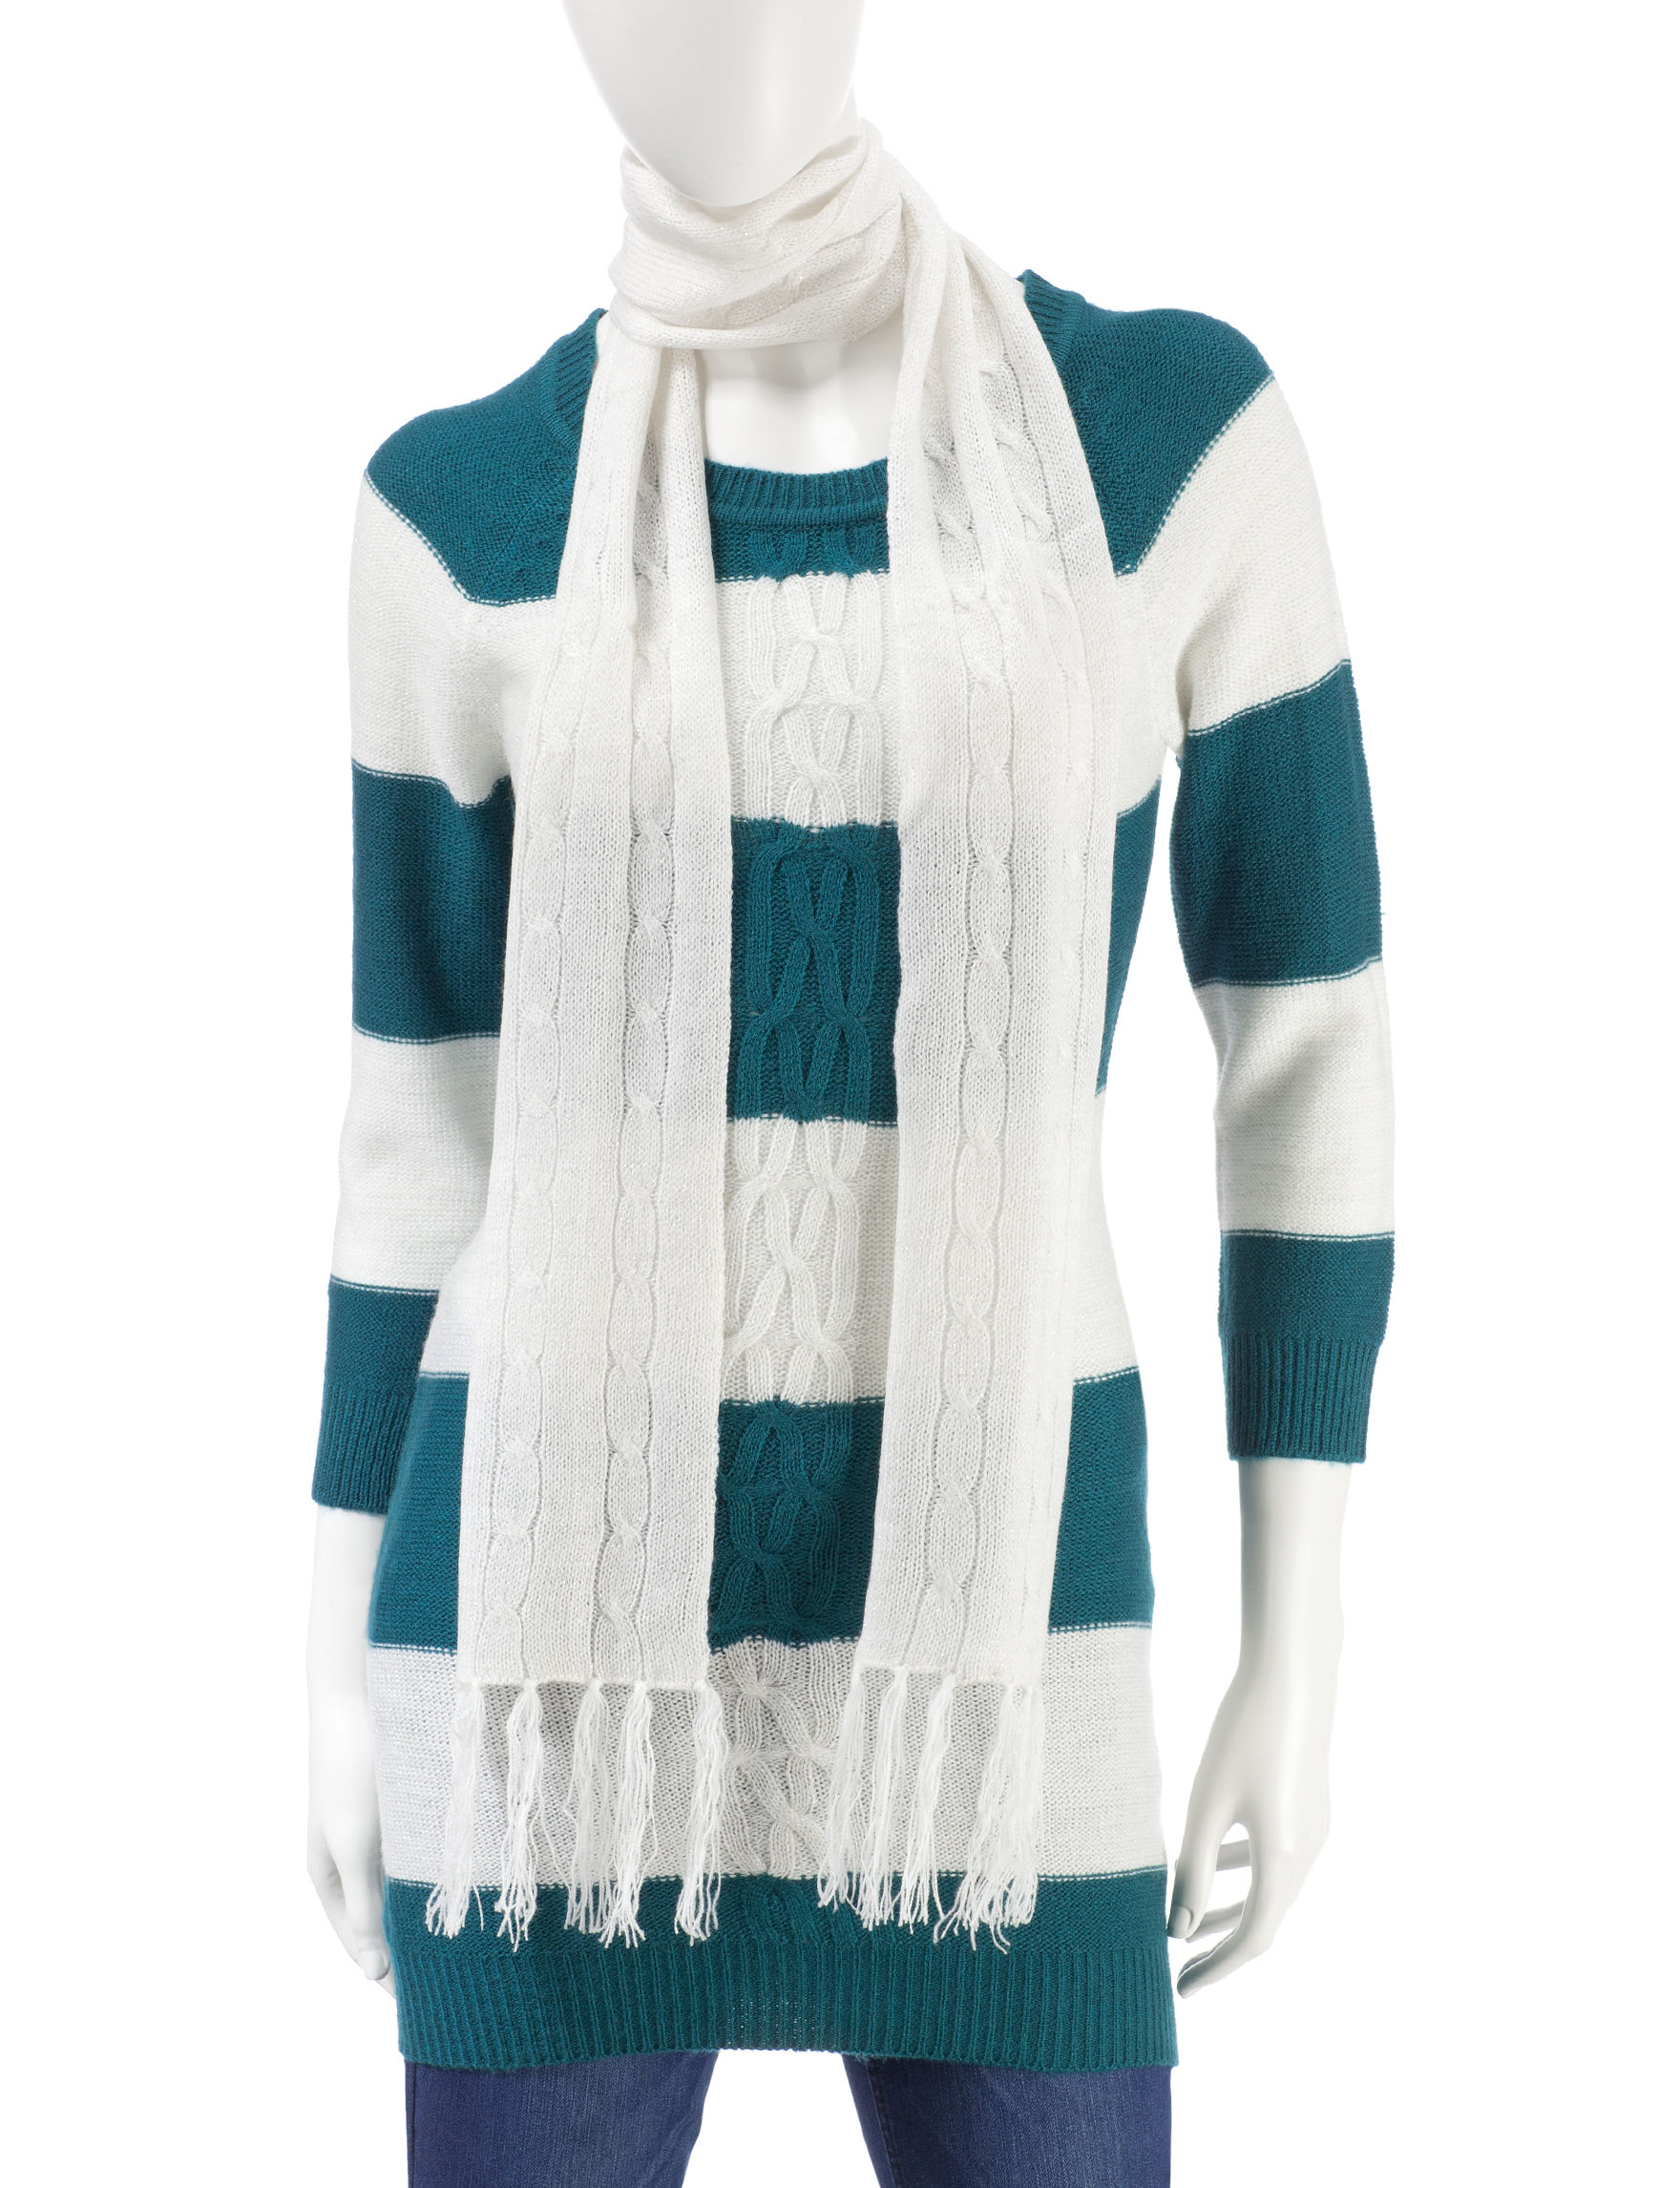 Made for Me to Look Amazing White / Turquoise Pull-overs